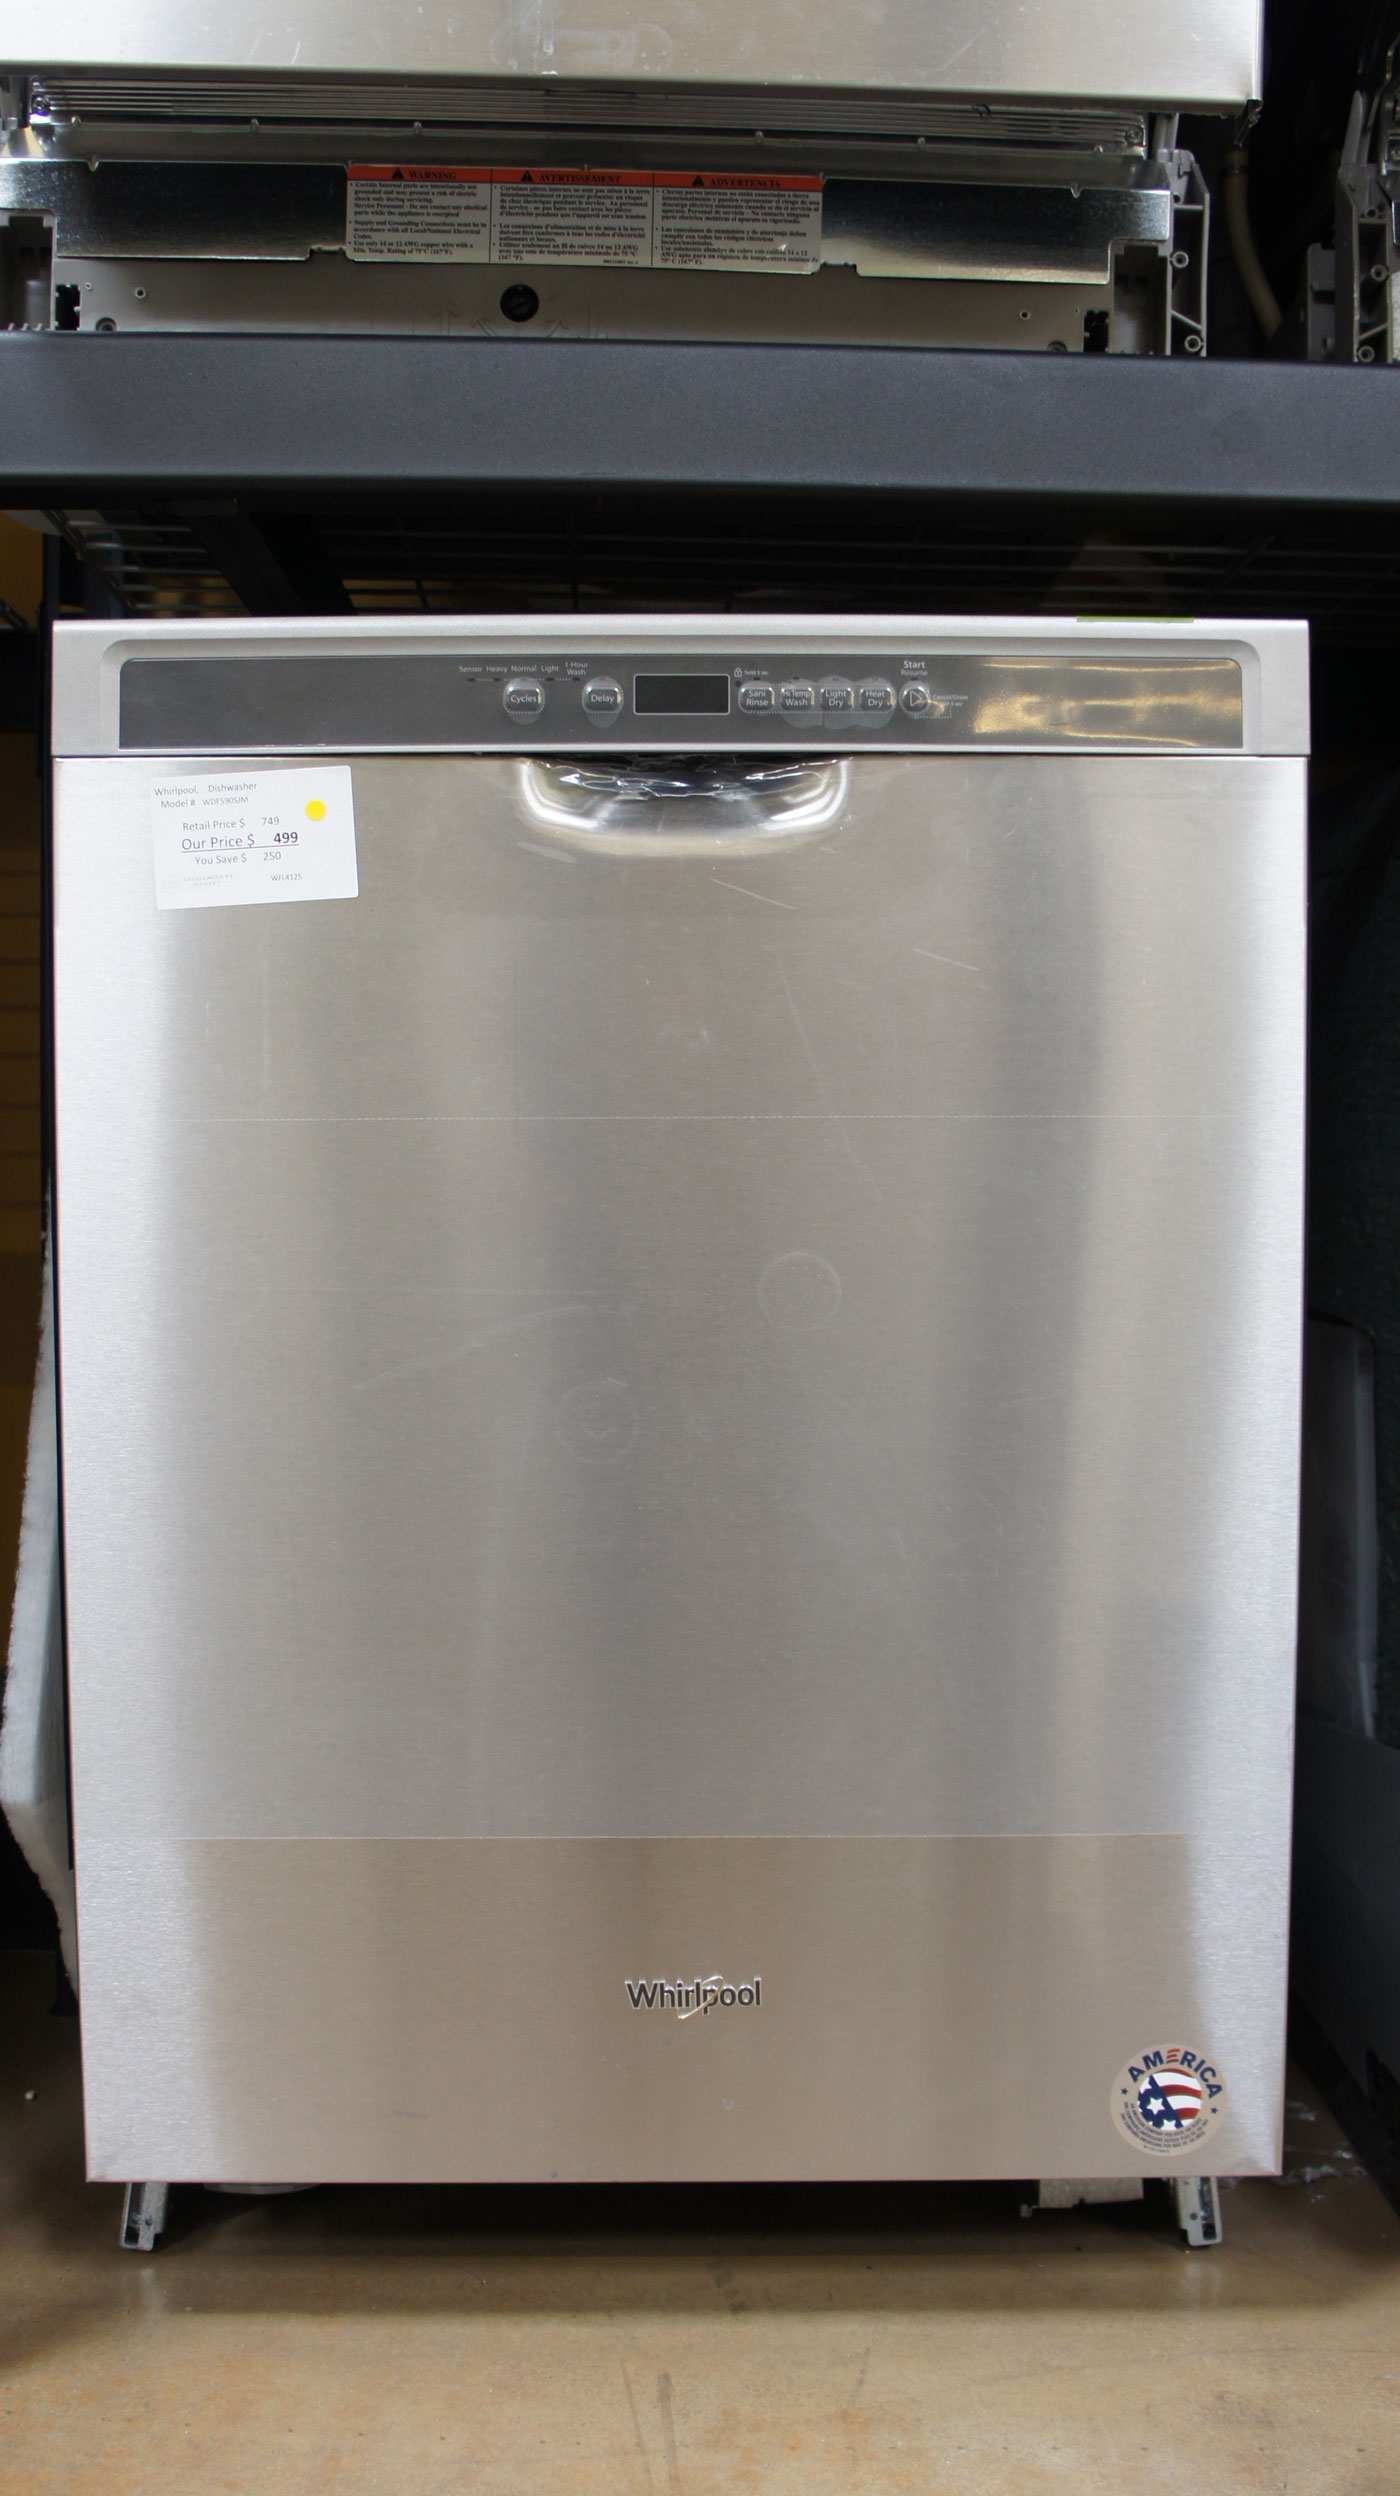 24 Whirlpool Wdf590sjm Fully Integrated Dishwasher Appliances Tv Outlet